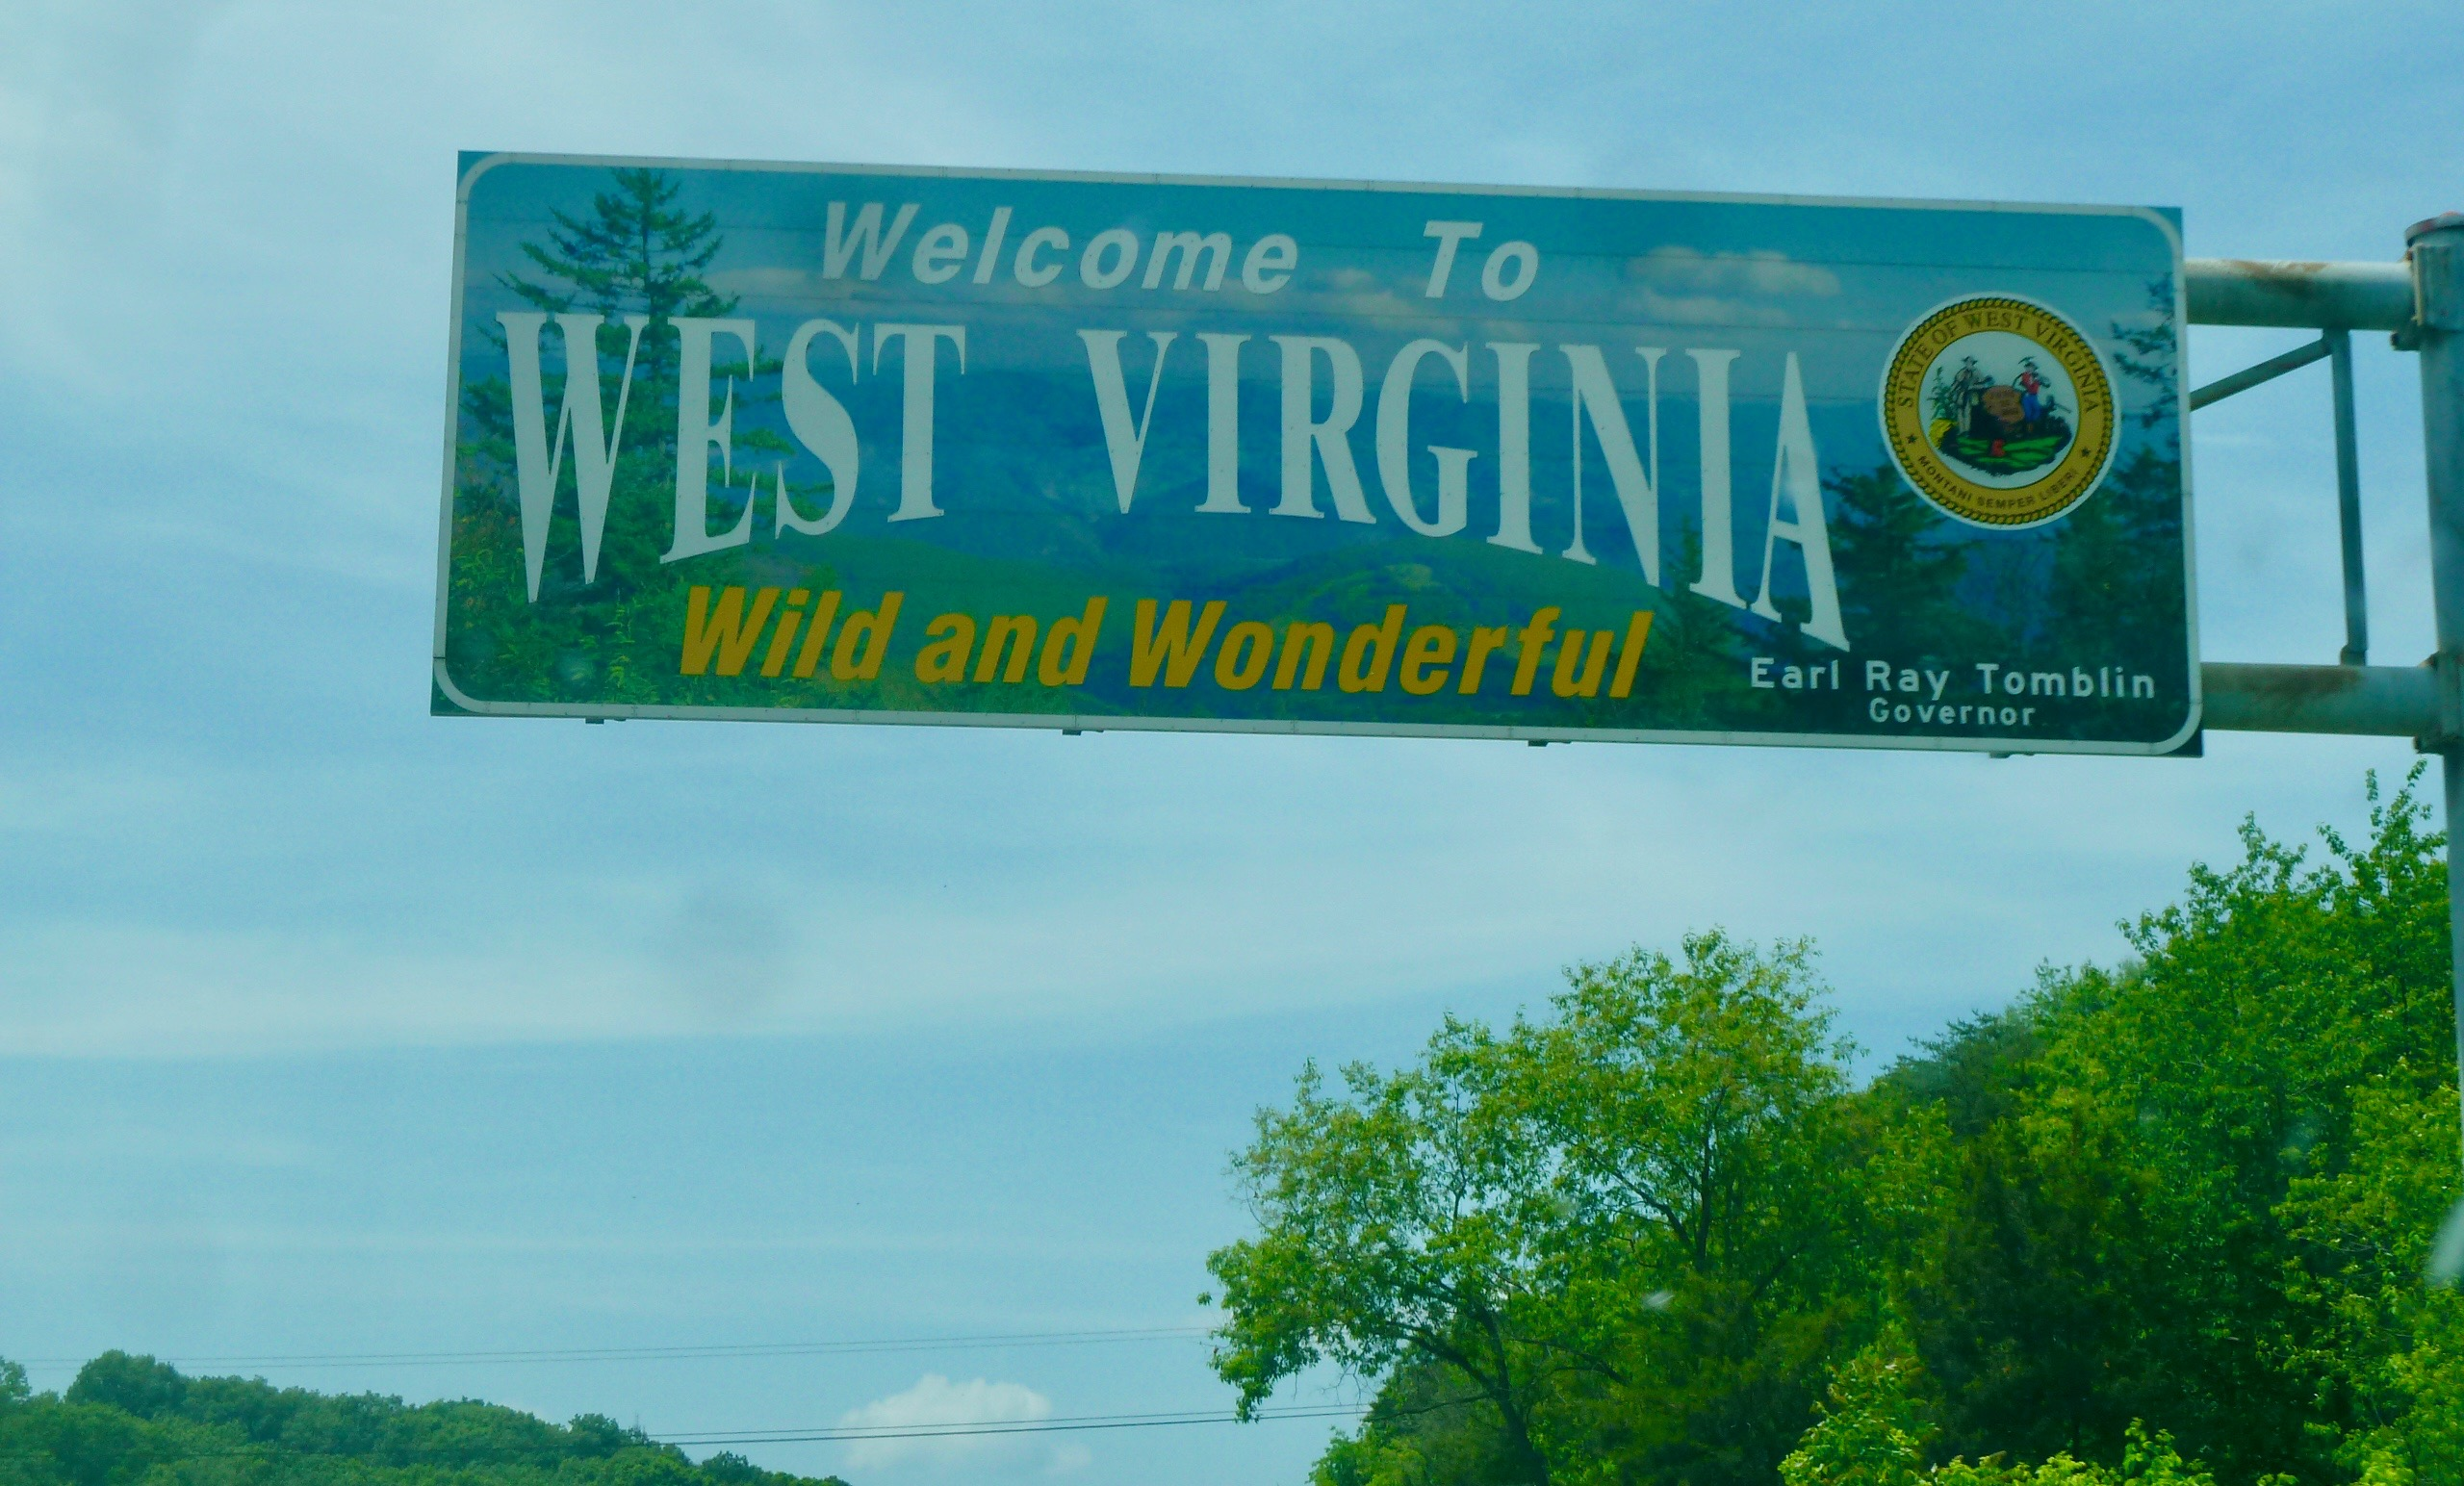 Family Adventuring in Wild, Wonderful West Virginia